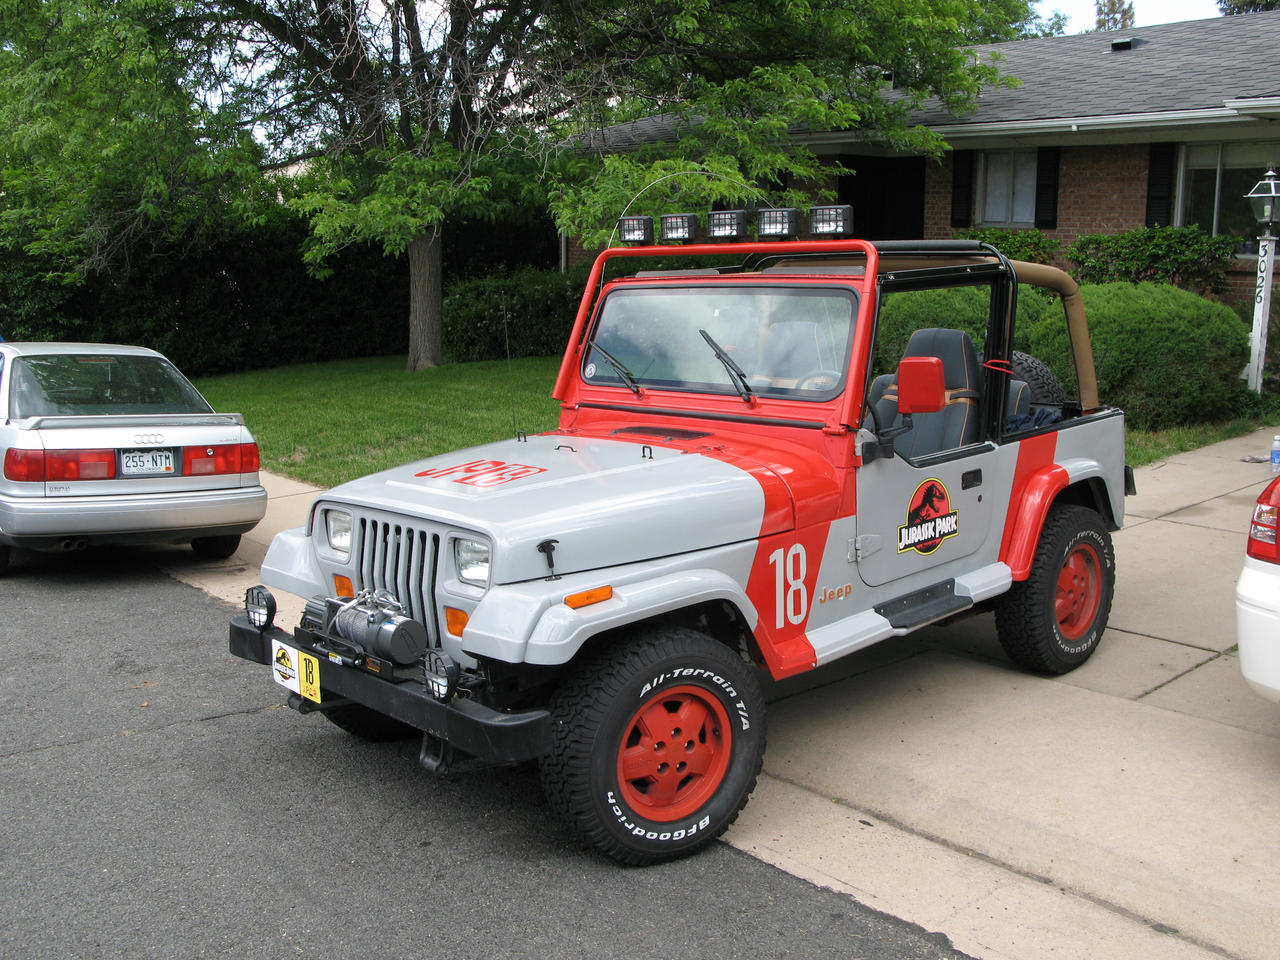 rc 4x4 cars for sale with Jurassic Park Jeep Wrangler 38 155967619 on 6730 First Ever Street Legal Mini Pick Up further Vw Baja Bug likewise F150raptor in addition Rc Snow Plow Service together with Watch.